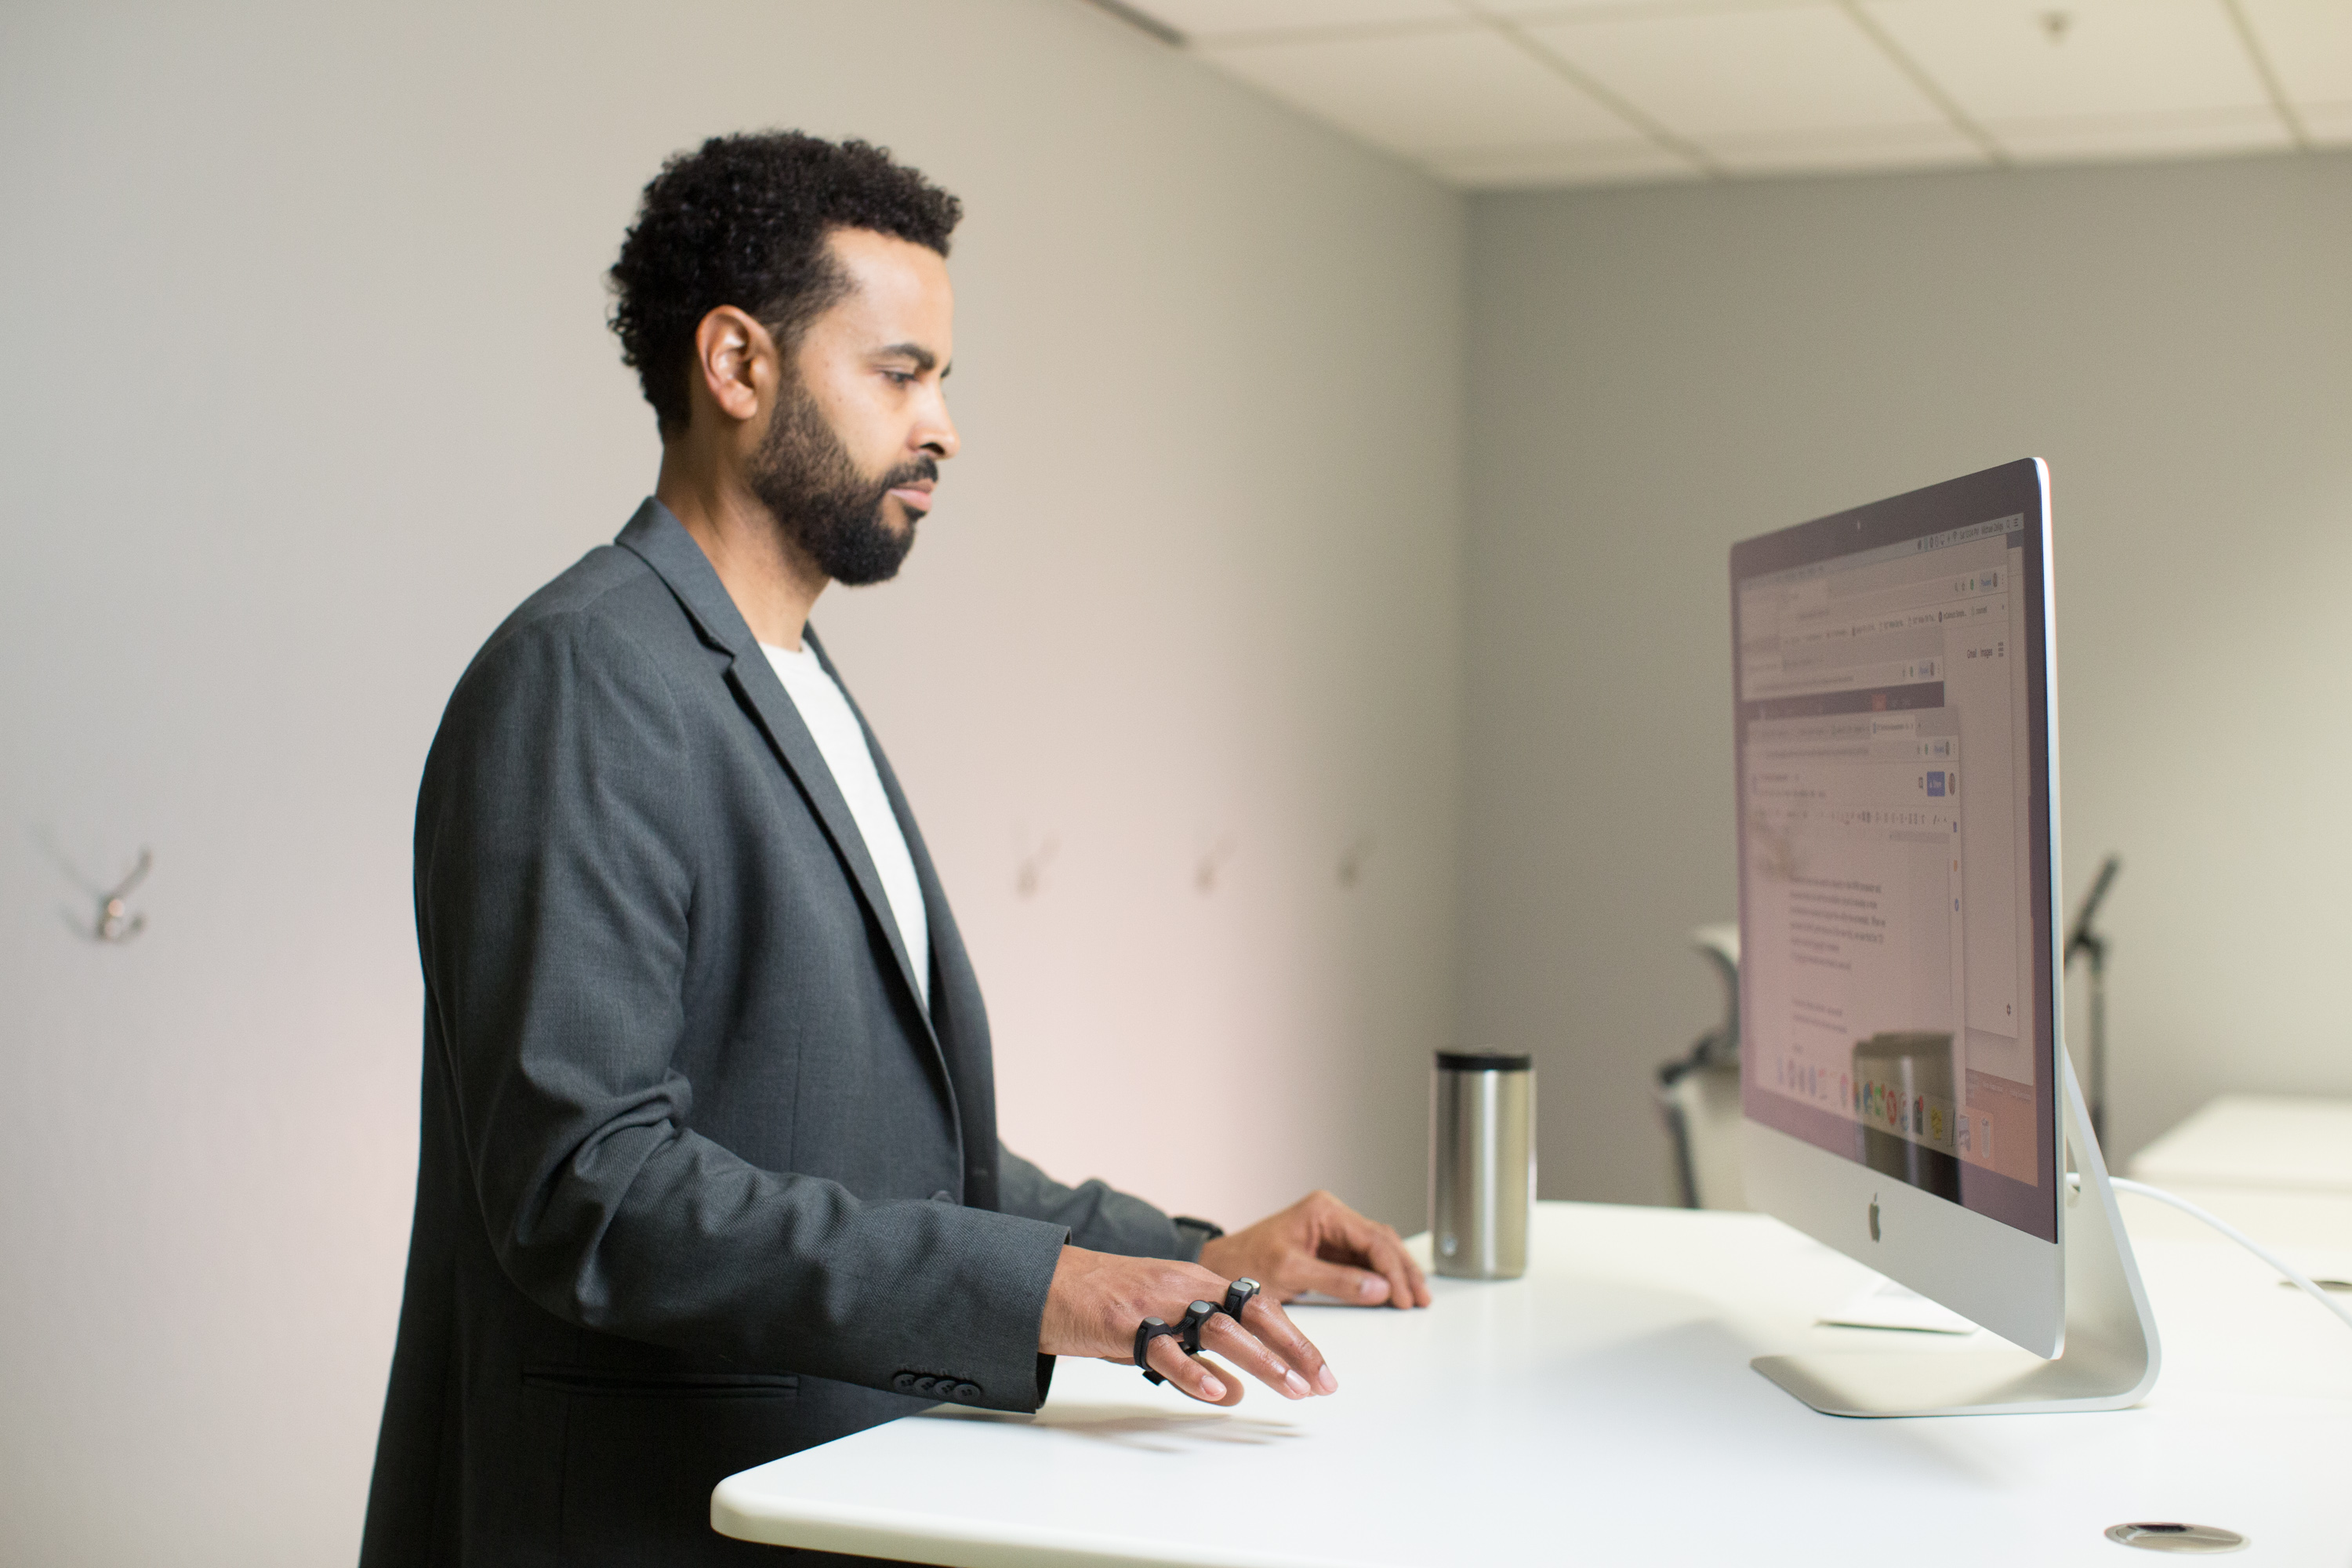 Man tapping at standing desk with perfect posture using Tap